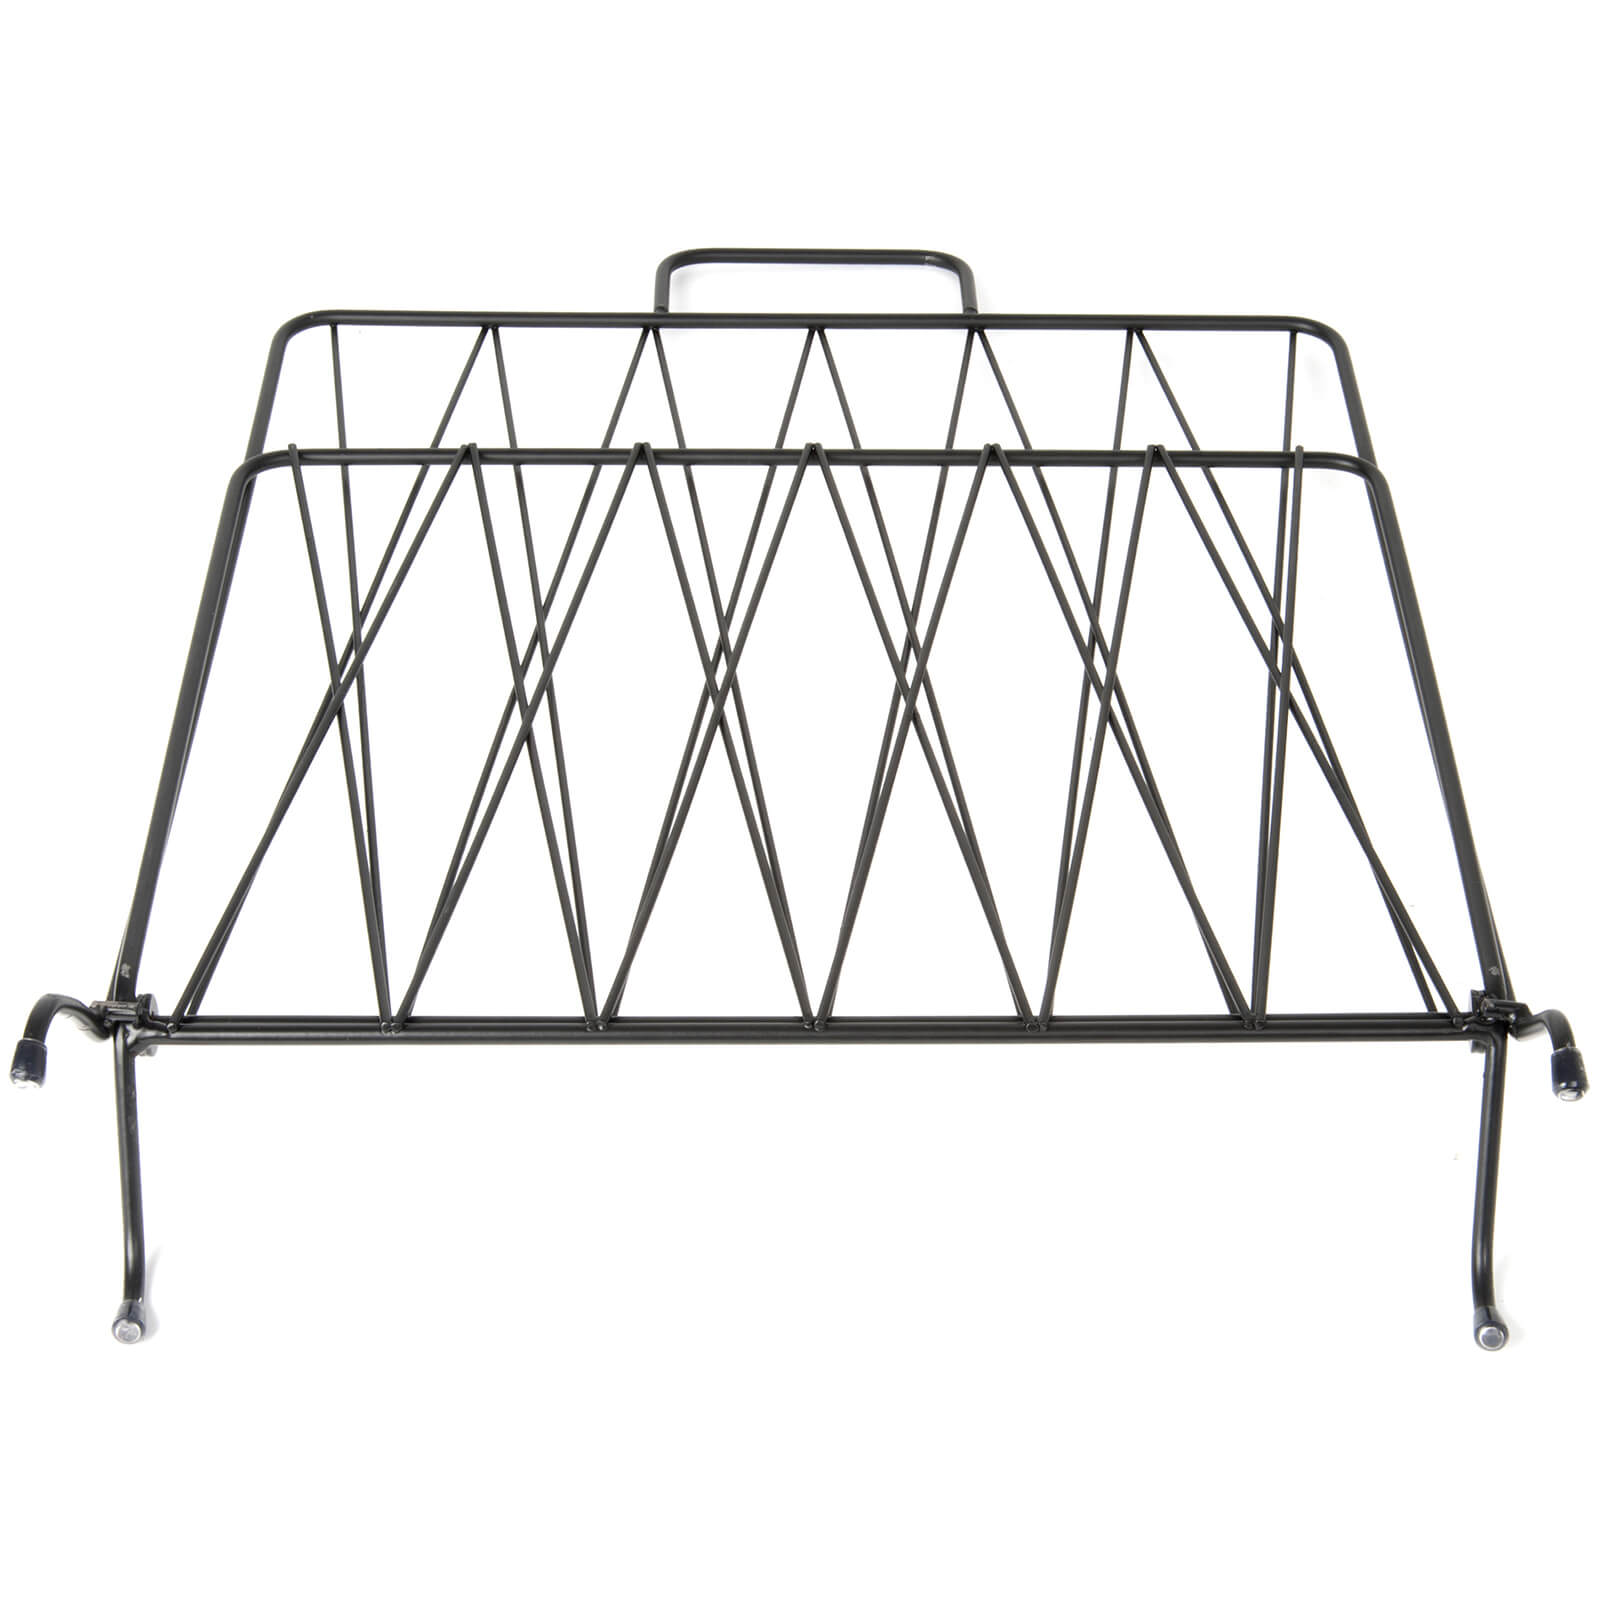 Present Time Diamond Raster Metal Magazine Rack - Matt Black